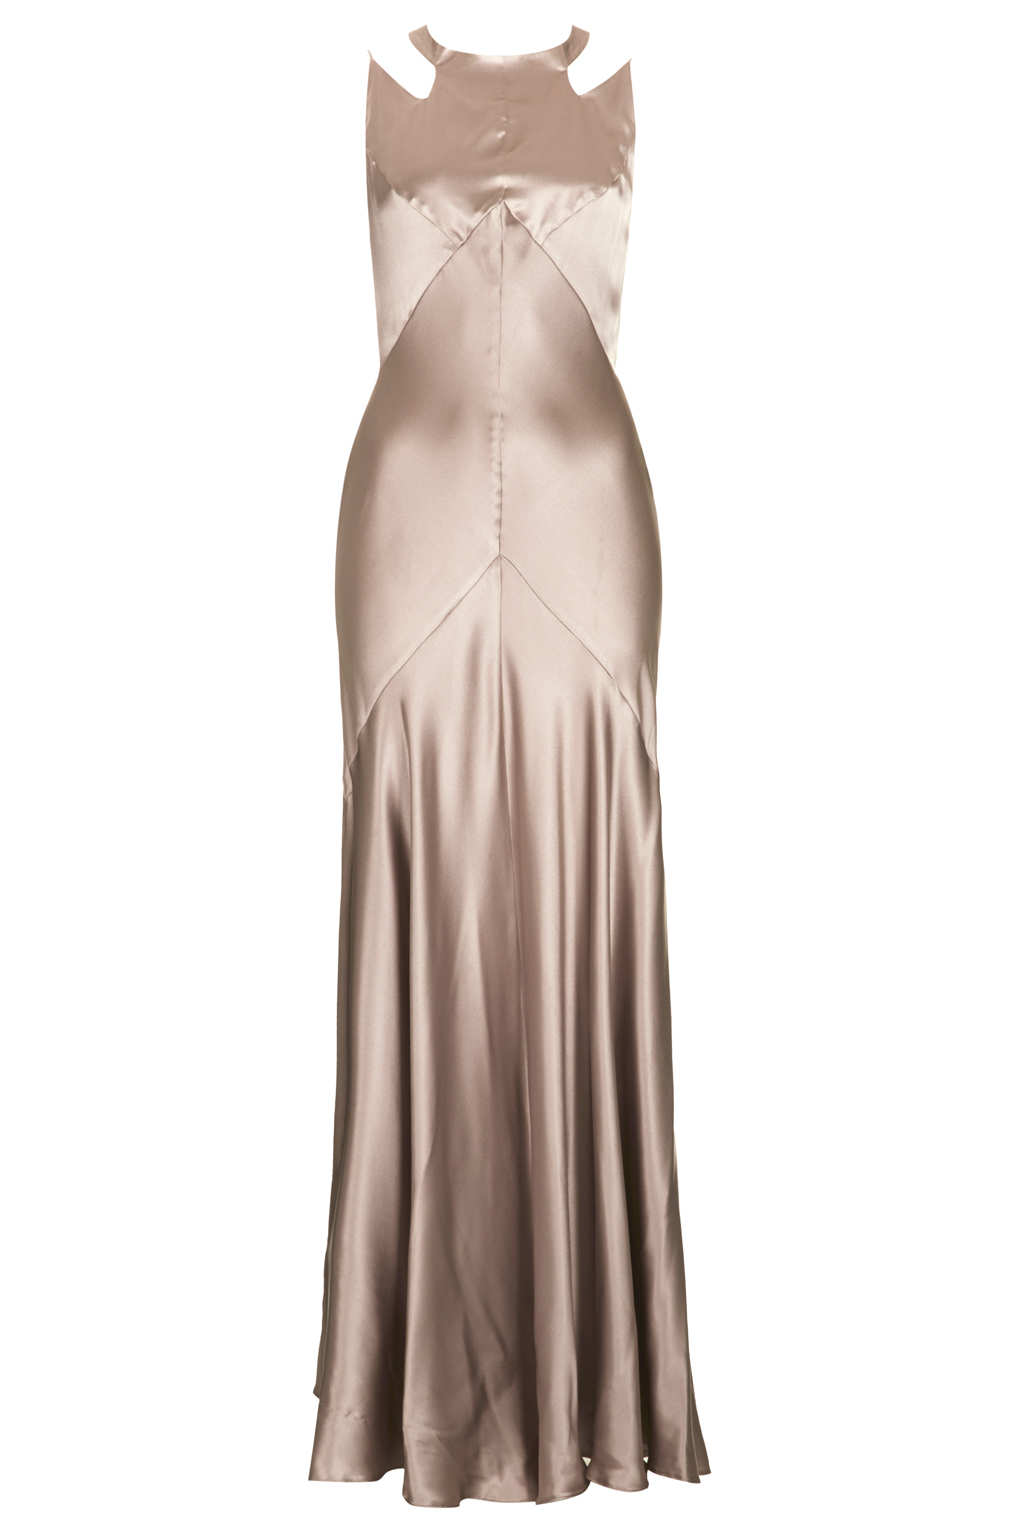 Lyst - Topshop Limited Edition Strappy Bias Cut Maxi Dress in Natural